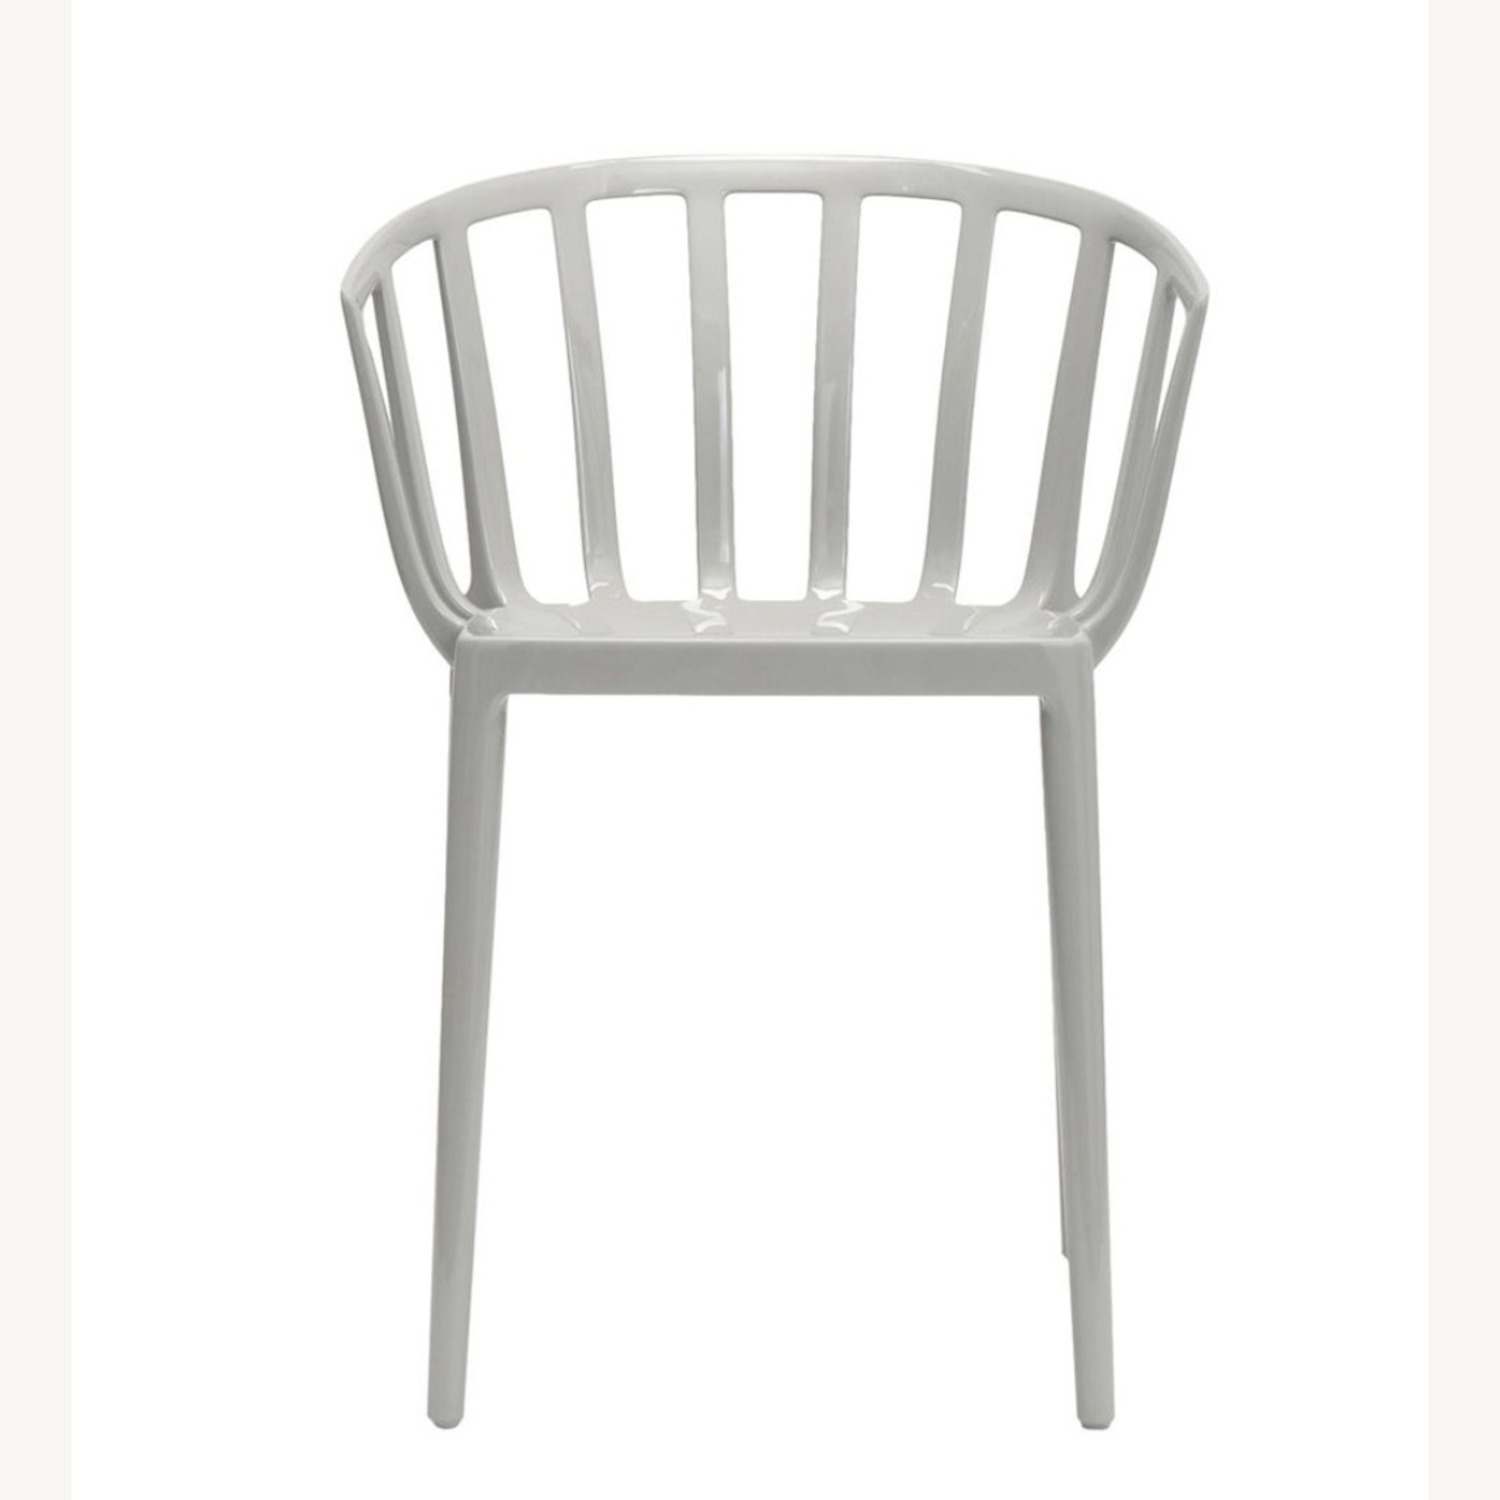 KARTELL Venice Chairs in Dove Gray Set of Two - image-2